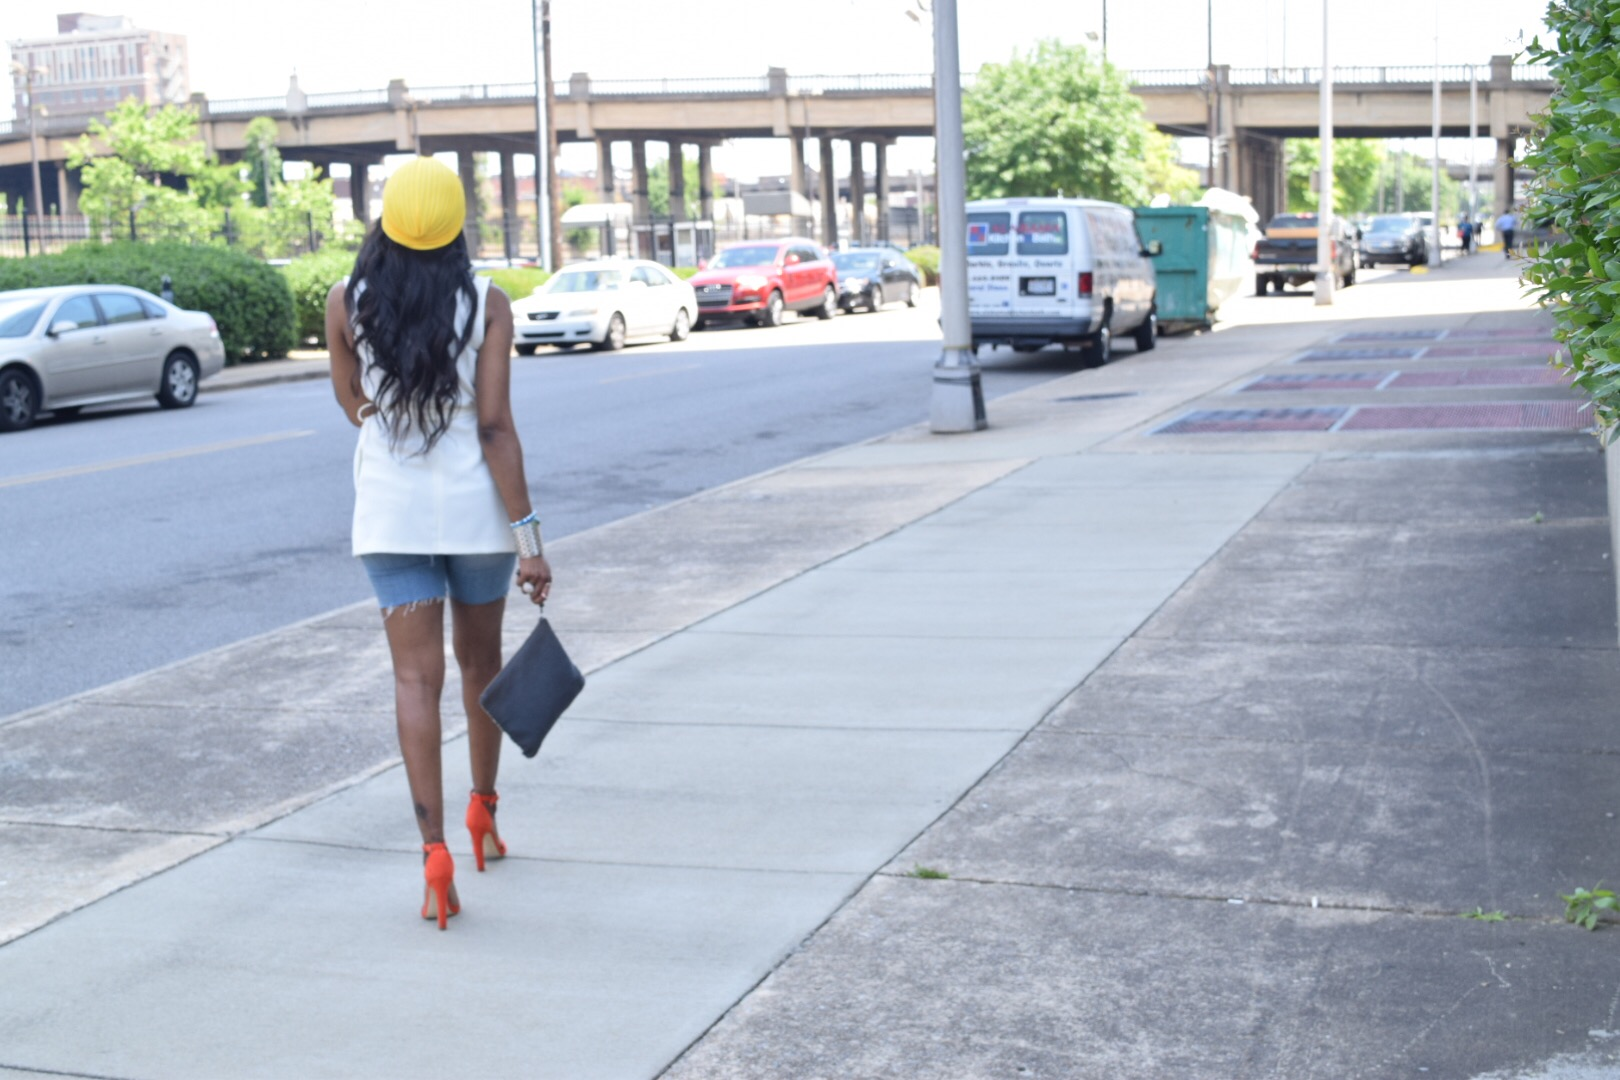 Style-Files-Forever 21-White-Longline Belted-Vest-Mossimo-Denim-Distressed--shorts-Justfab-Orange-heel-kati-sandals-yellow-turban-mirror-sunglasses-oohlalablog-15